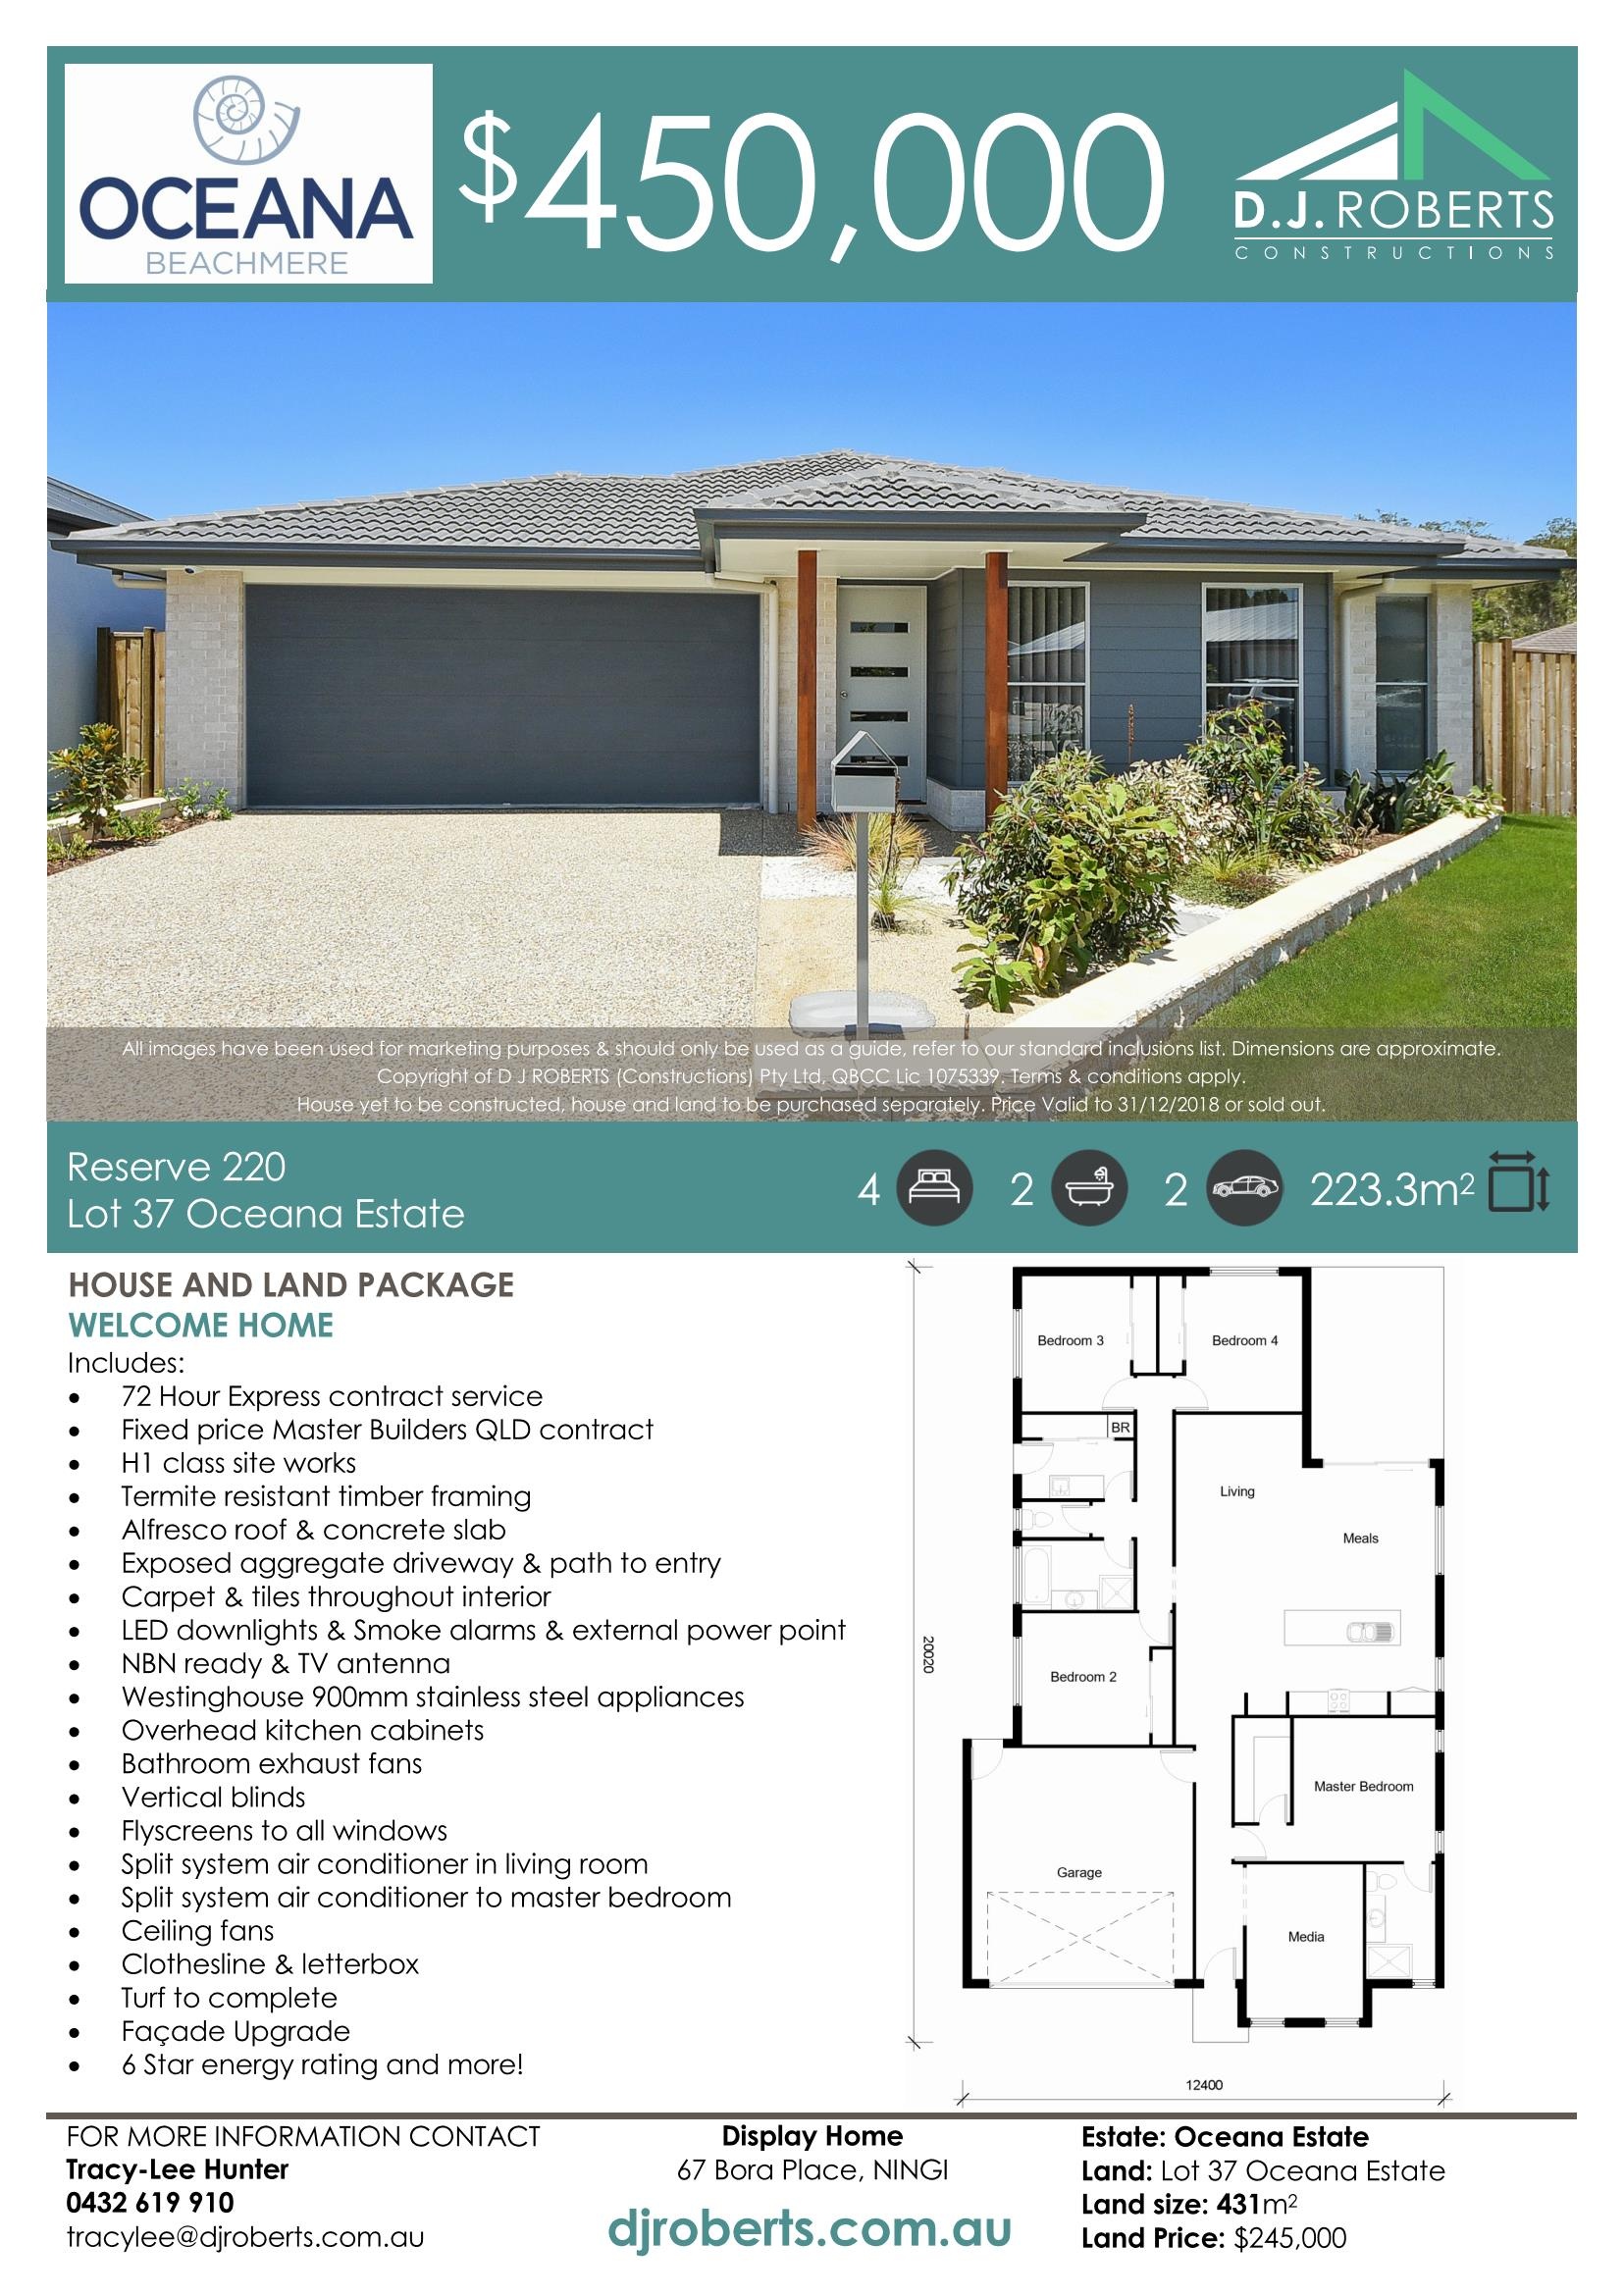 House and Land Packages — Oceana Beachmere